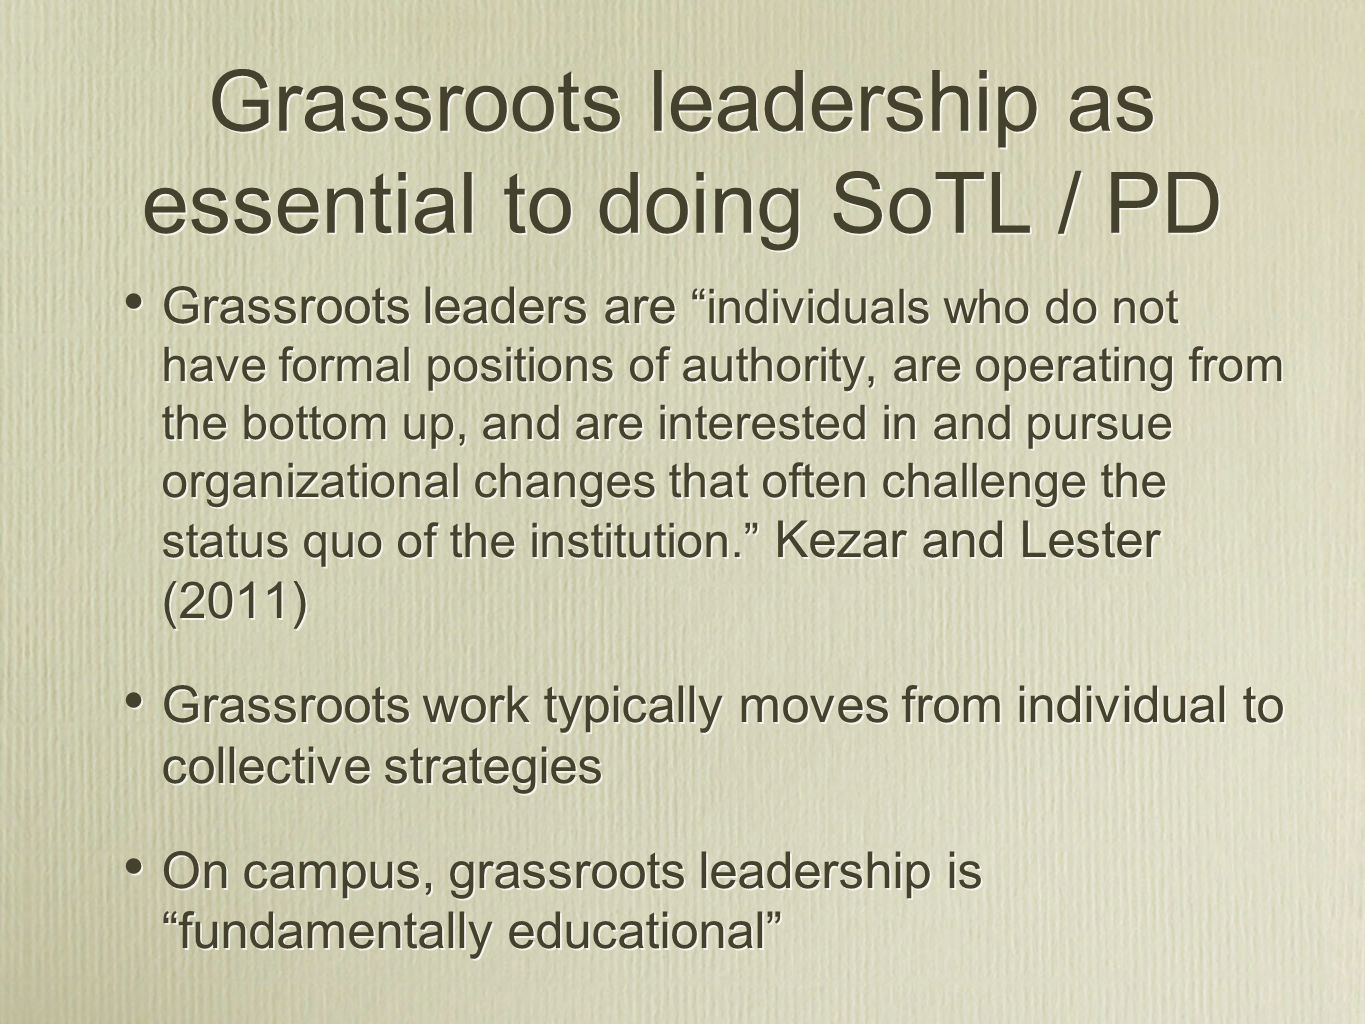 Grassroots leadership as essential to doing SoTL / PD